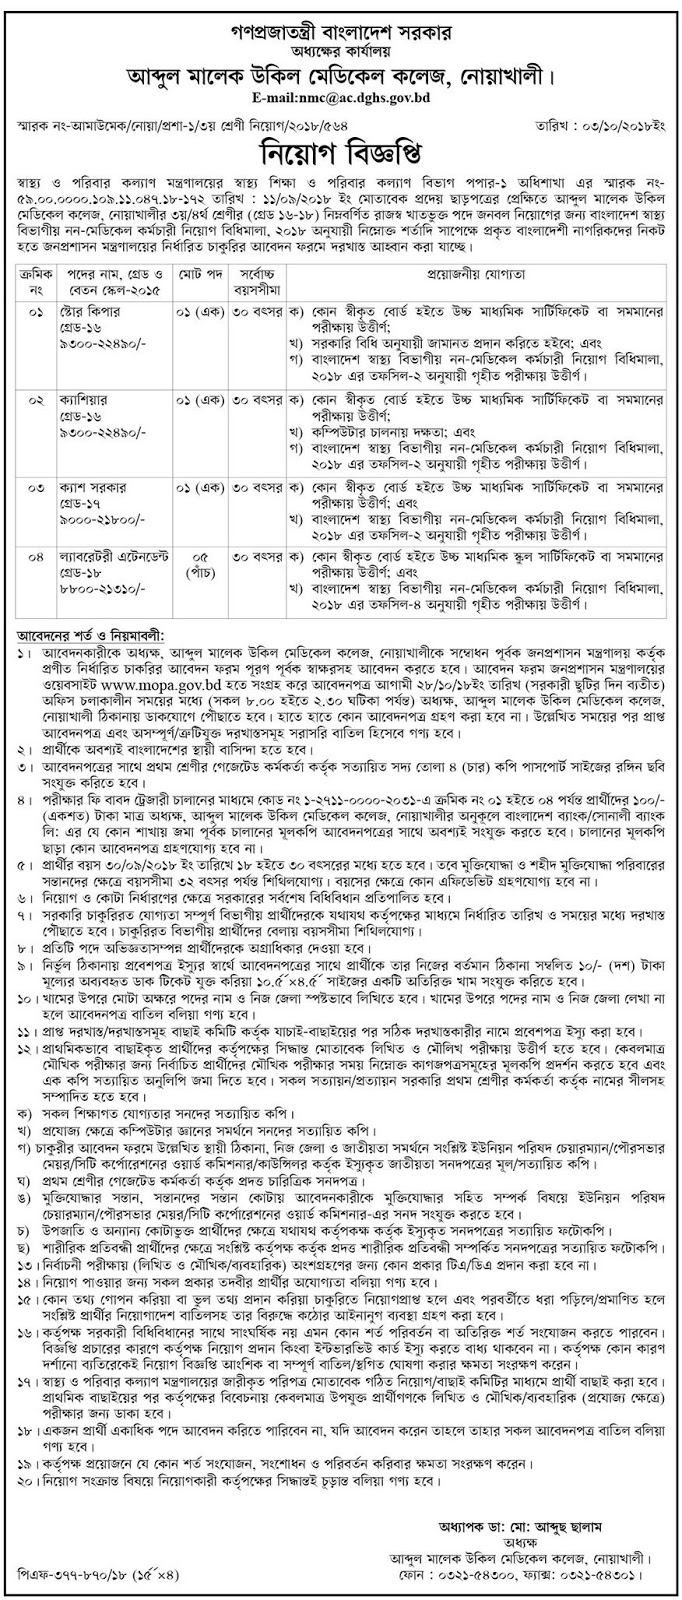 Abdul Malek Ukil Medical College, Noakhali Job Circular 2018